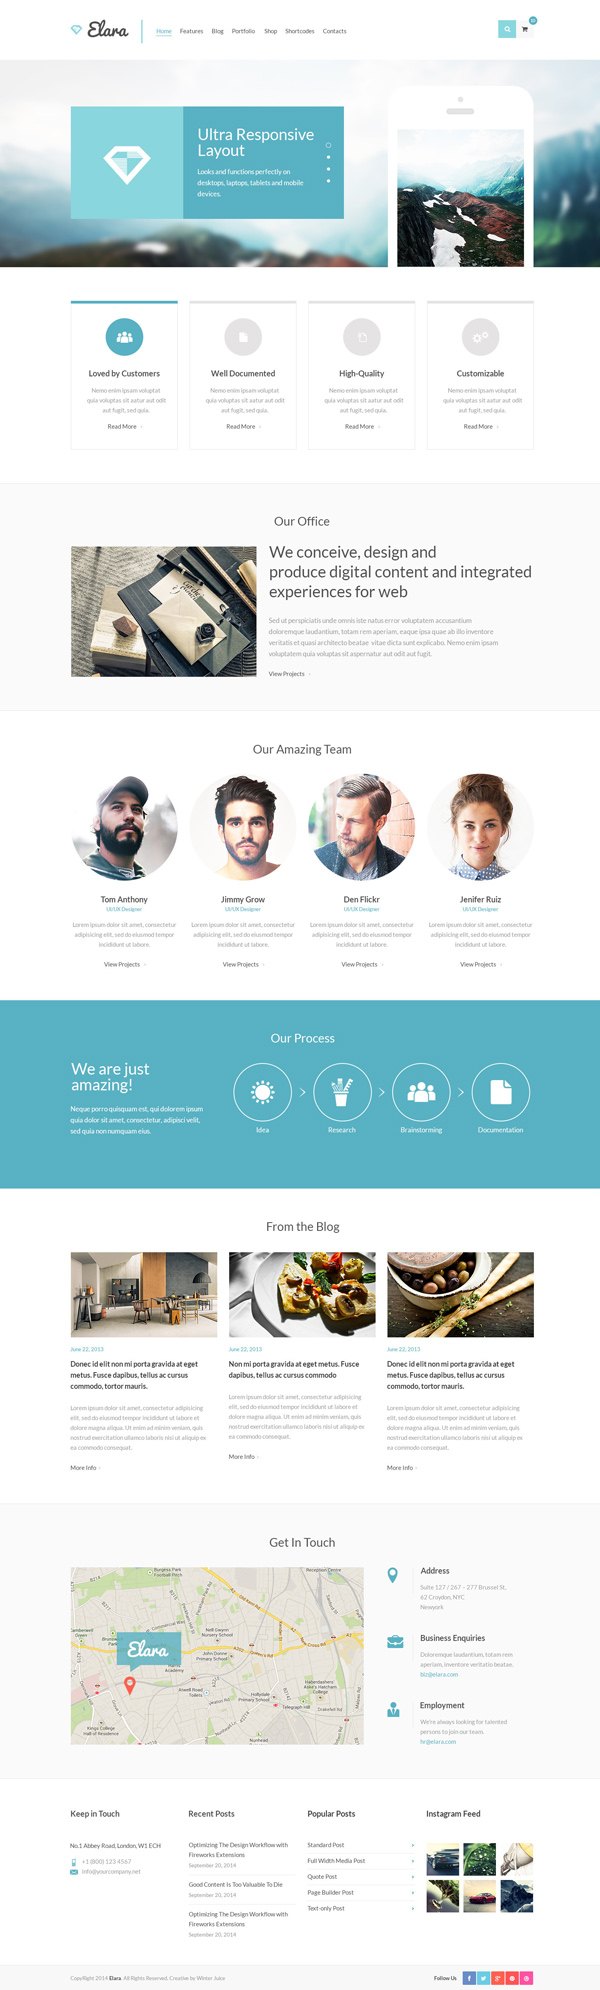 Elara - Multipurpose WordPress Theme